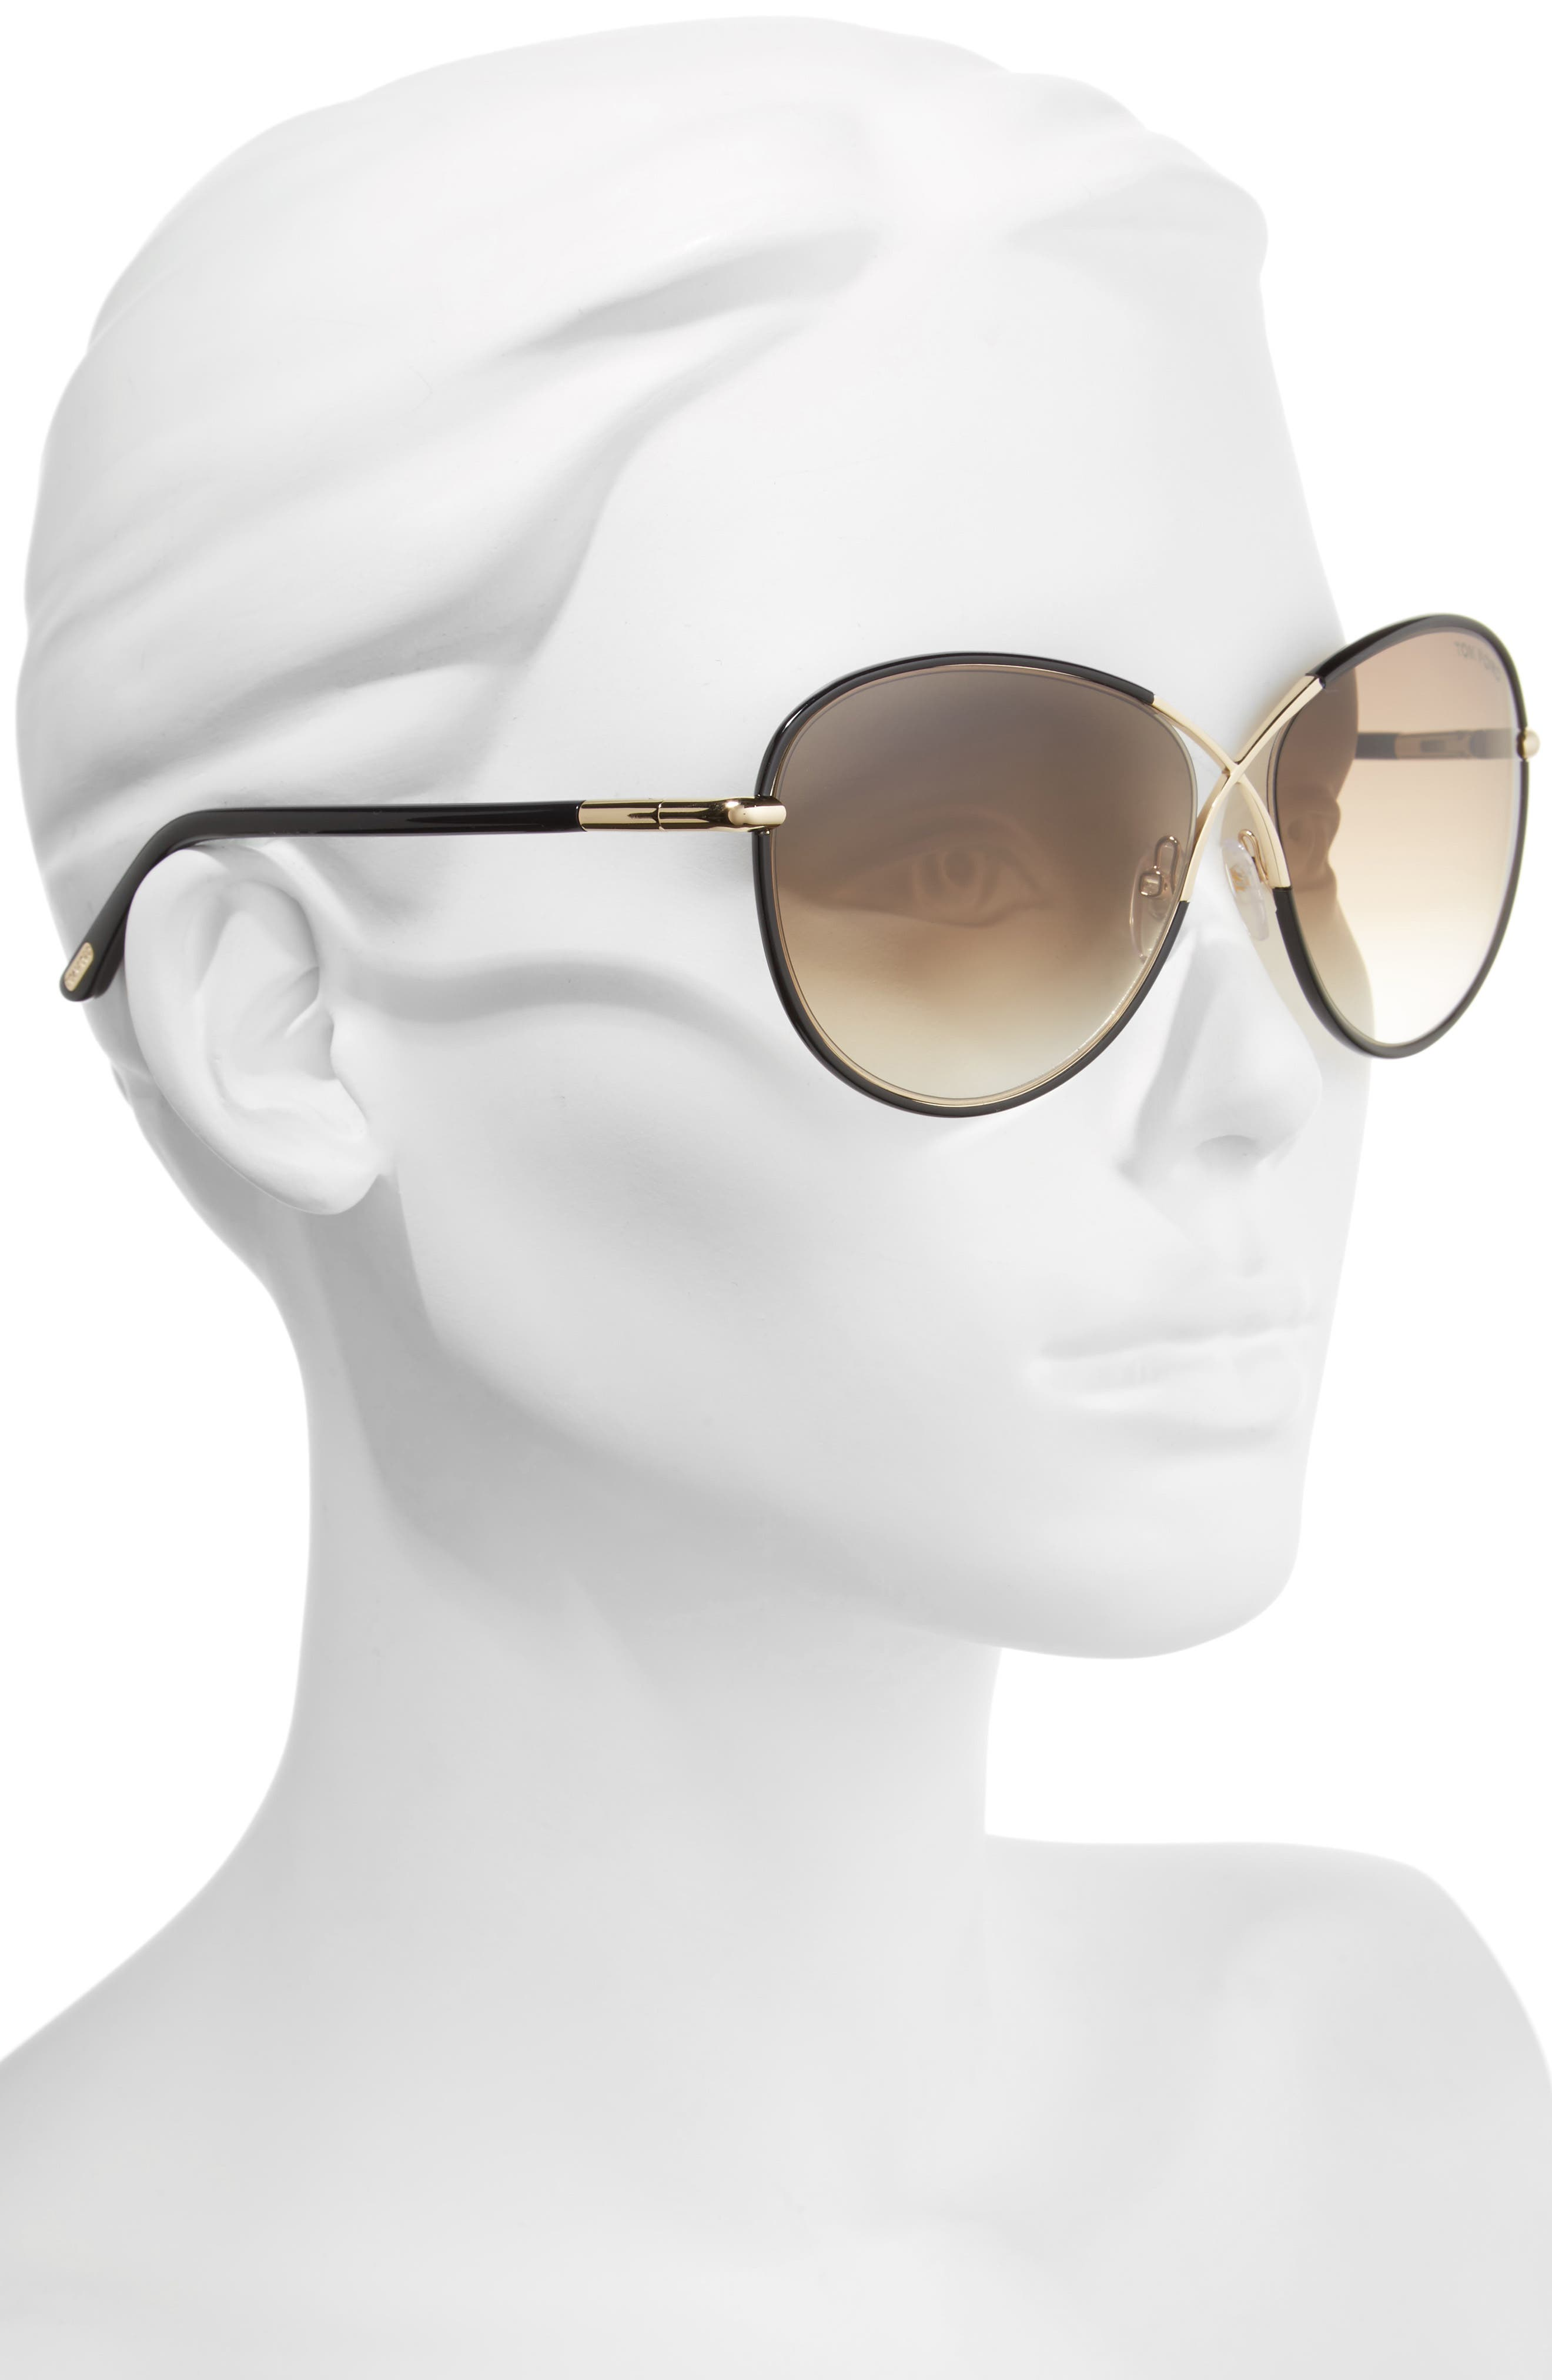 Rosie 62mm Gradient Butterfly Sunglasses,                             Alternate thumbnail 2, color,                             001